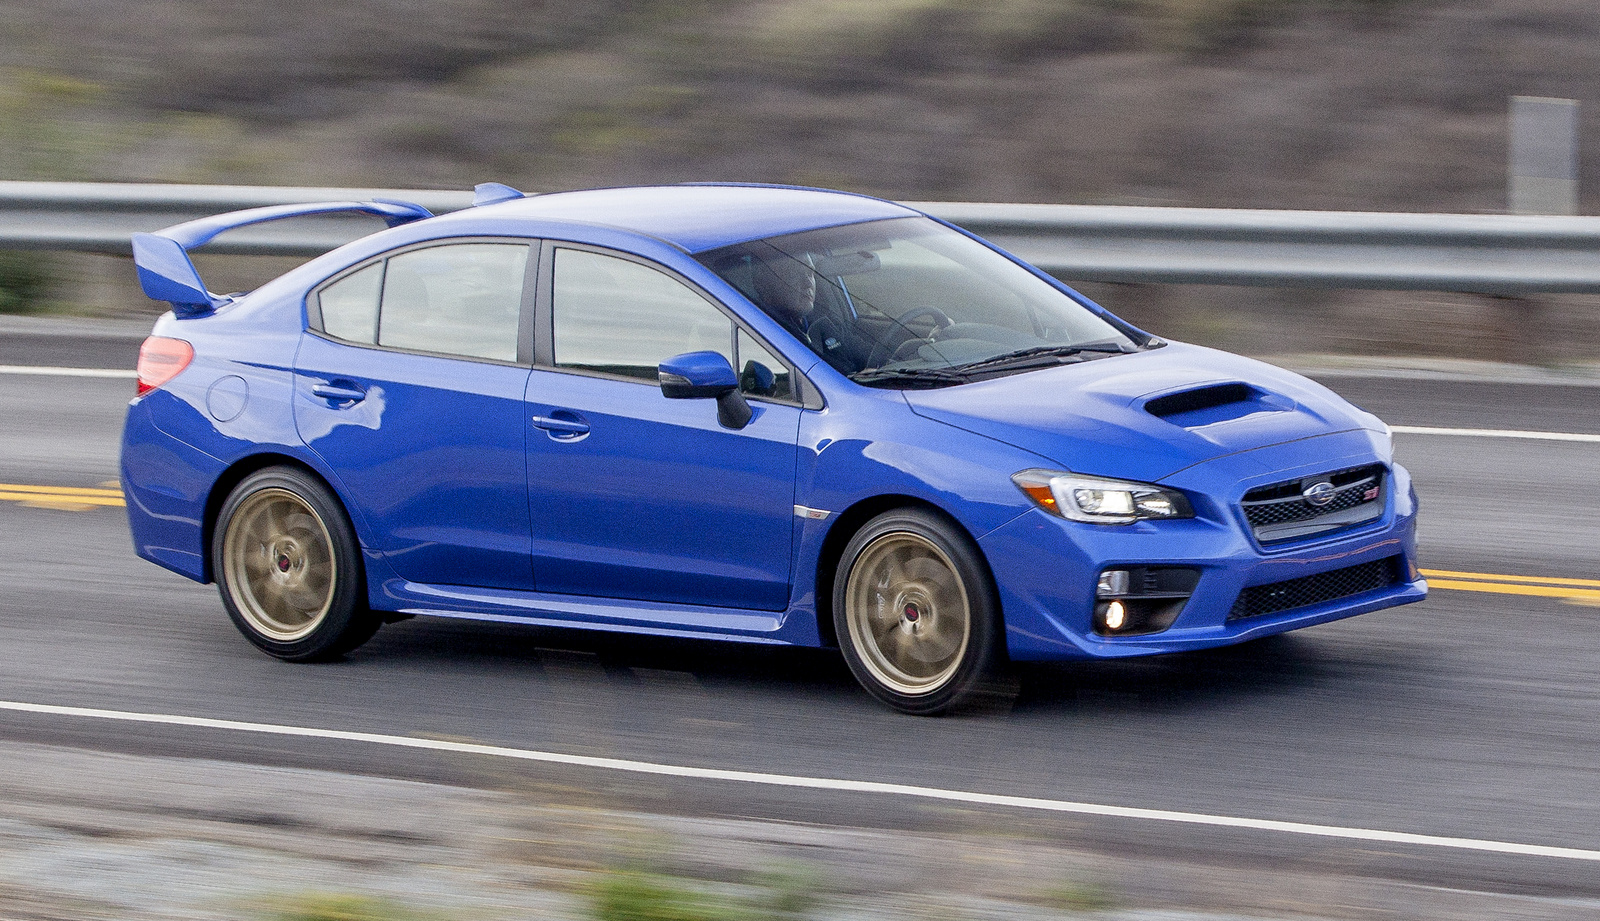 new 2014 2015 2016 subaru impreza wrx sti for sale   cargurus